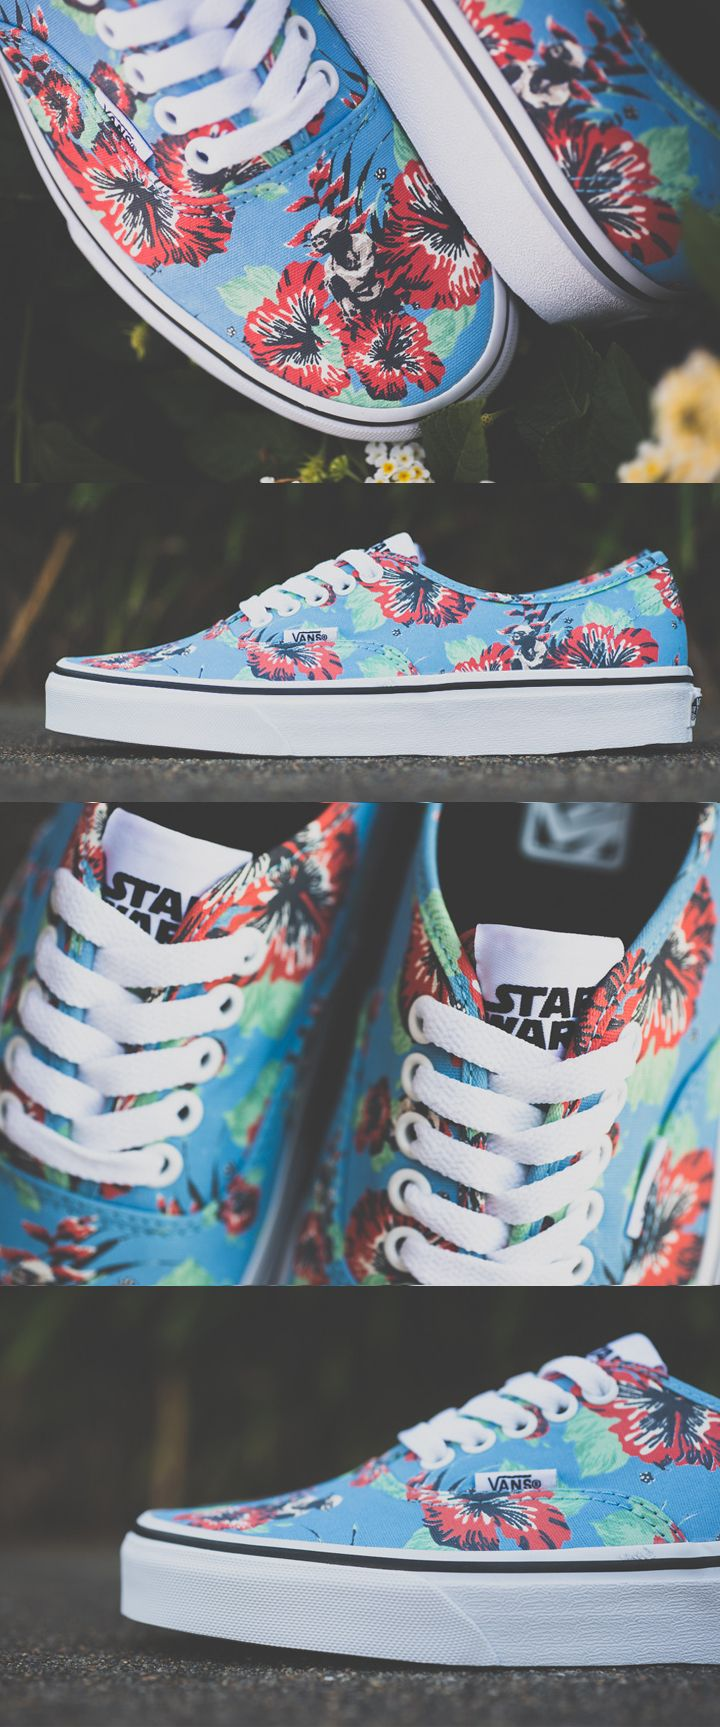 ffd36e2b15 Vans x Star Wars    Yoda Aloha Authentic Shoes...These make me happy ...